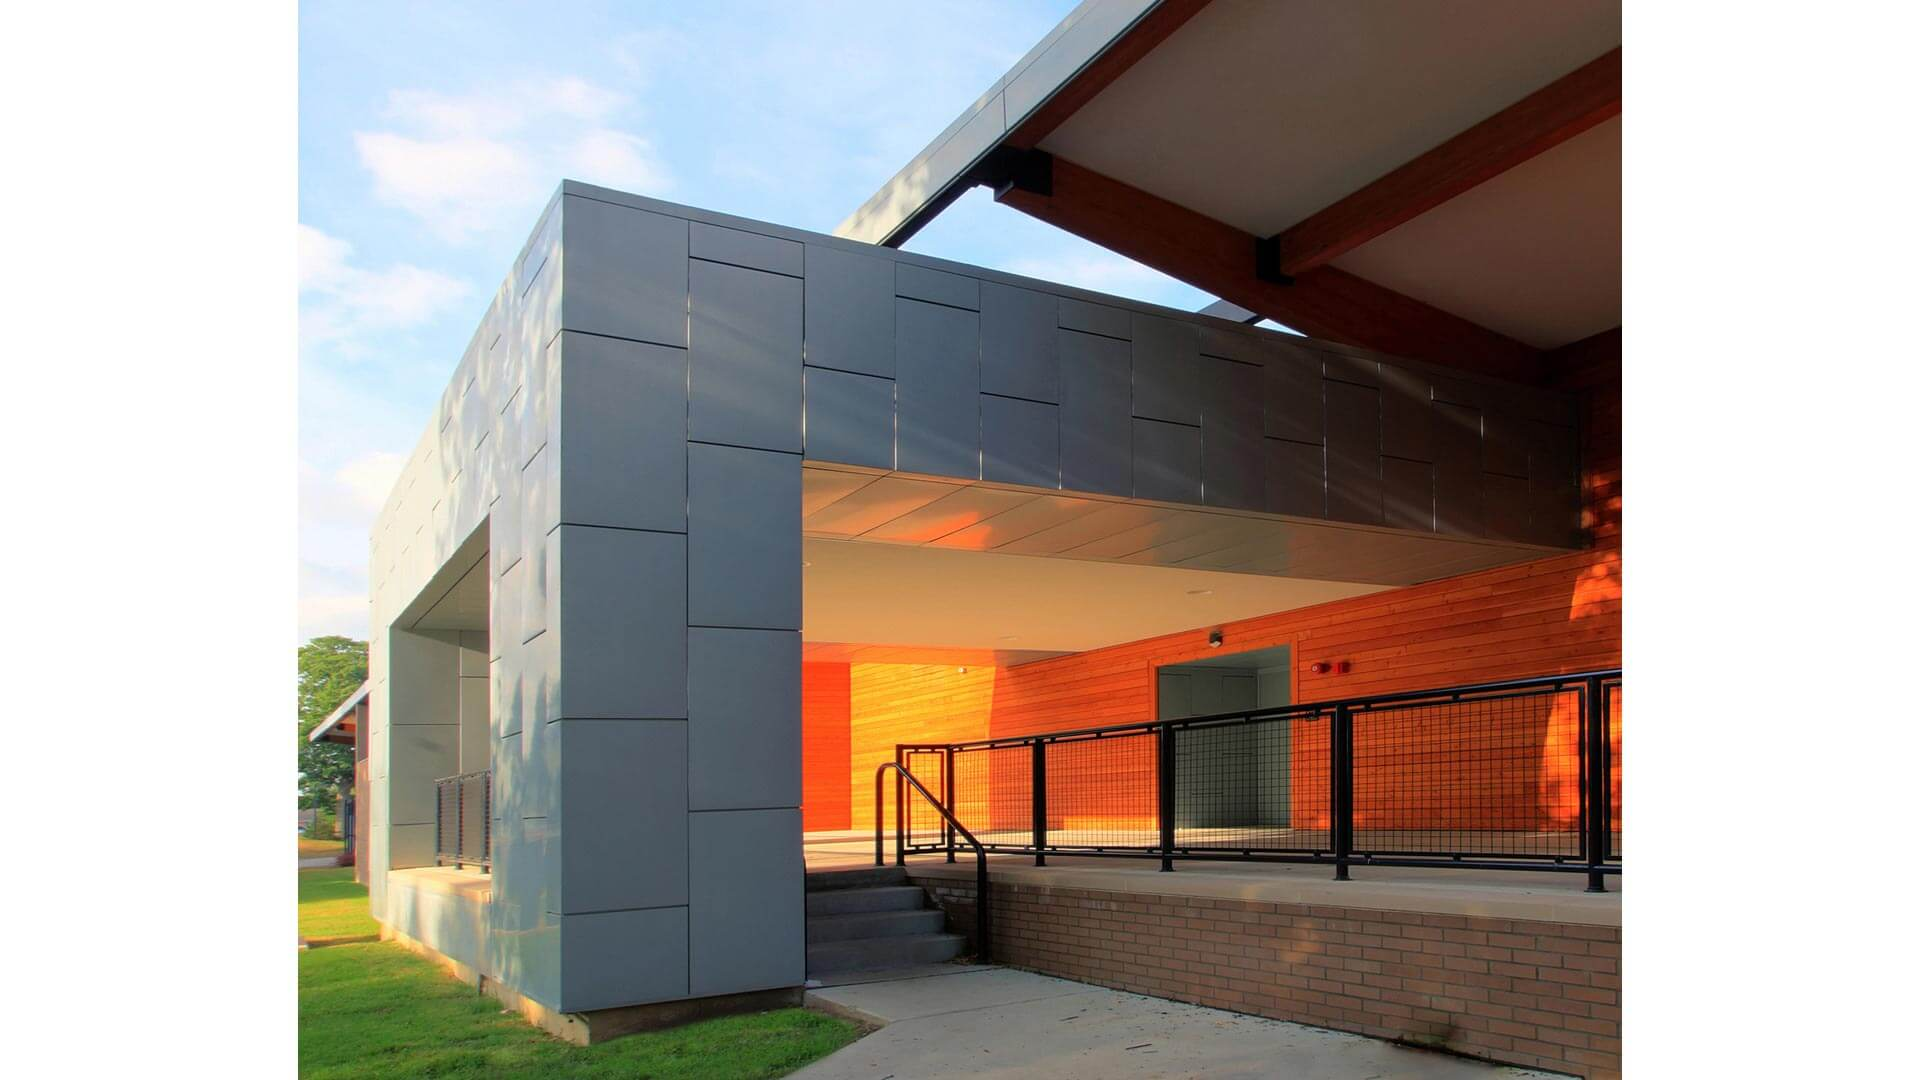 ZINC Cladding - Treatment Center - Lutheran Child and Family Services (LCFS) - Christopher Short - Indianapolis